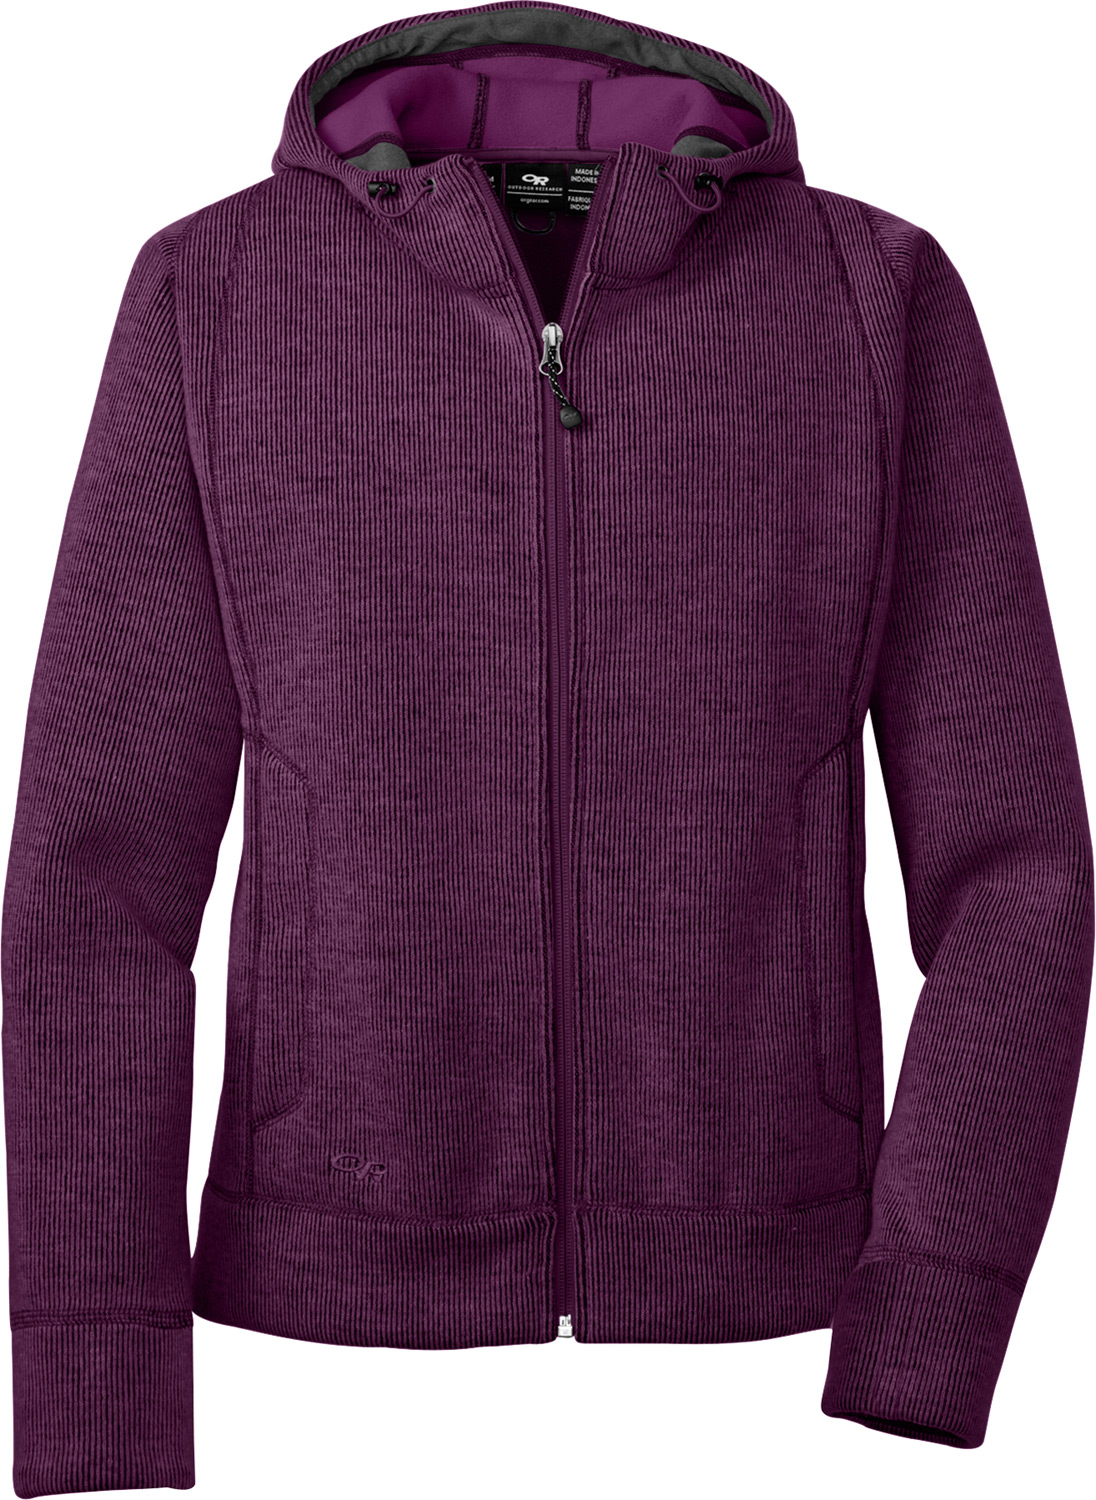 Sweater-style, fleecy mid or outer-layer for warmth in blustery conditionsKey Features of the Outdoor Research Salida Fleece Hoodie: Alpin-wool Plus fabric; wool/nylon blend exterior/wicking polyester interior Front adjustable hood Two handwarmer pockets Internal snap-closure media pocket - $94.95